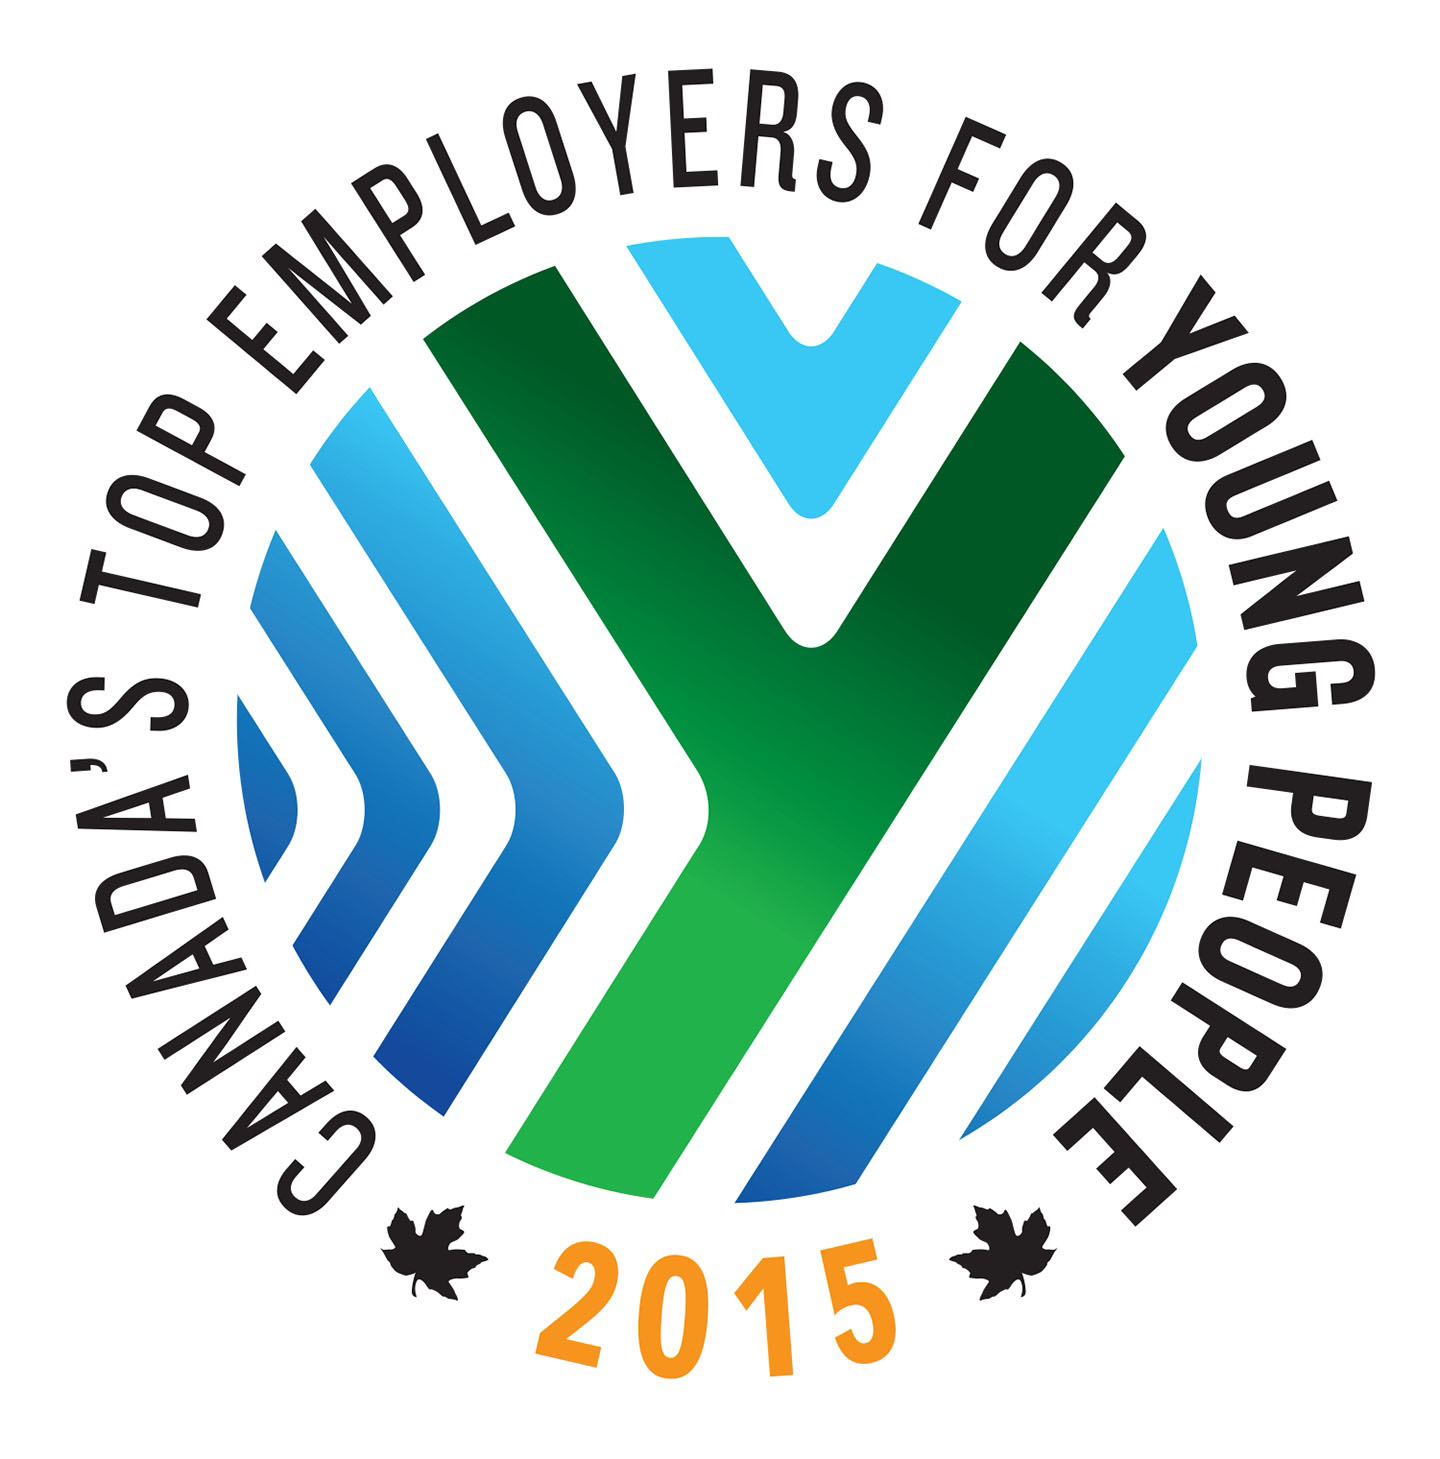 Top Employers for young people